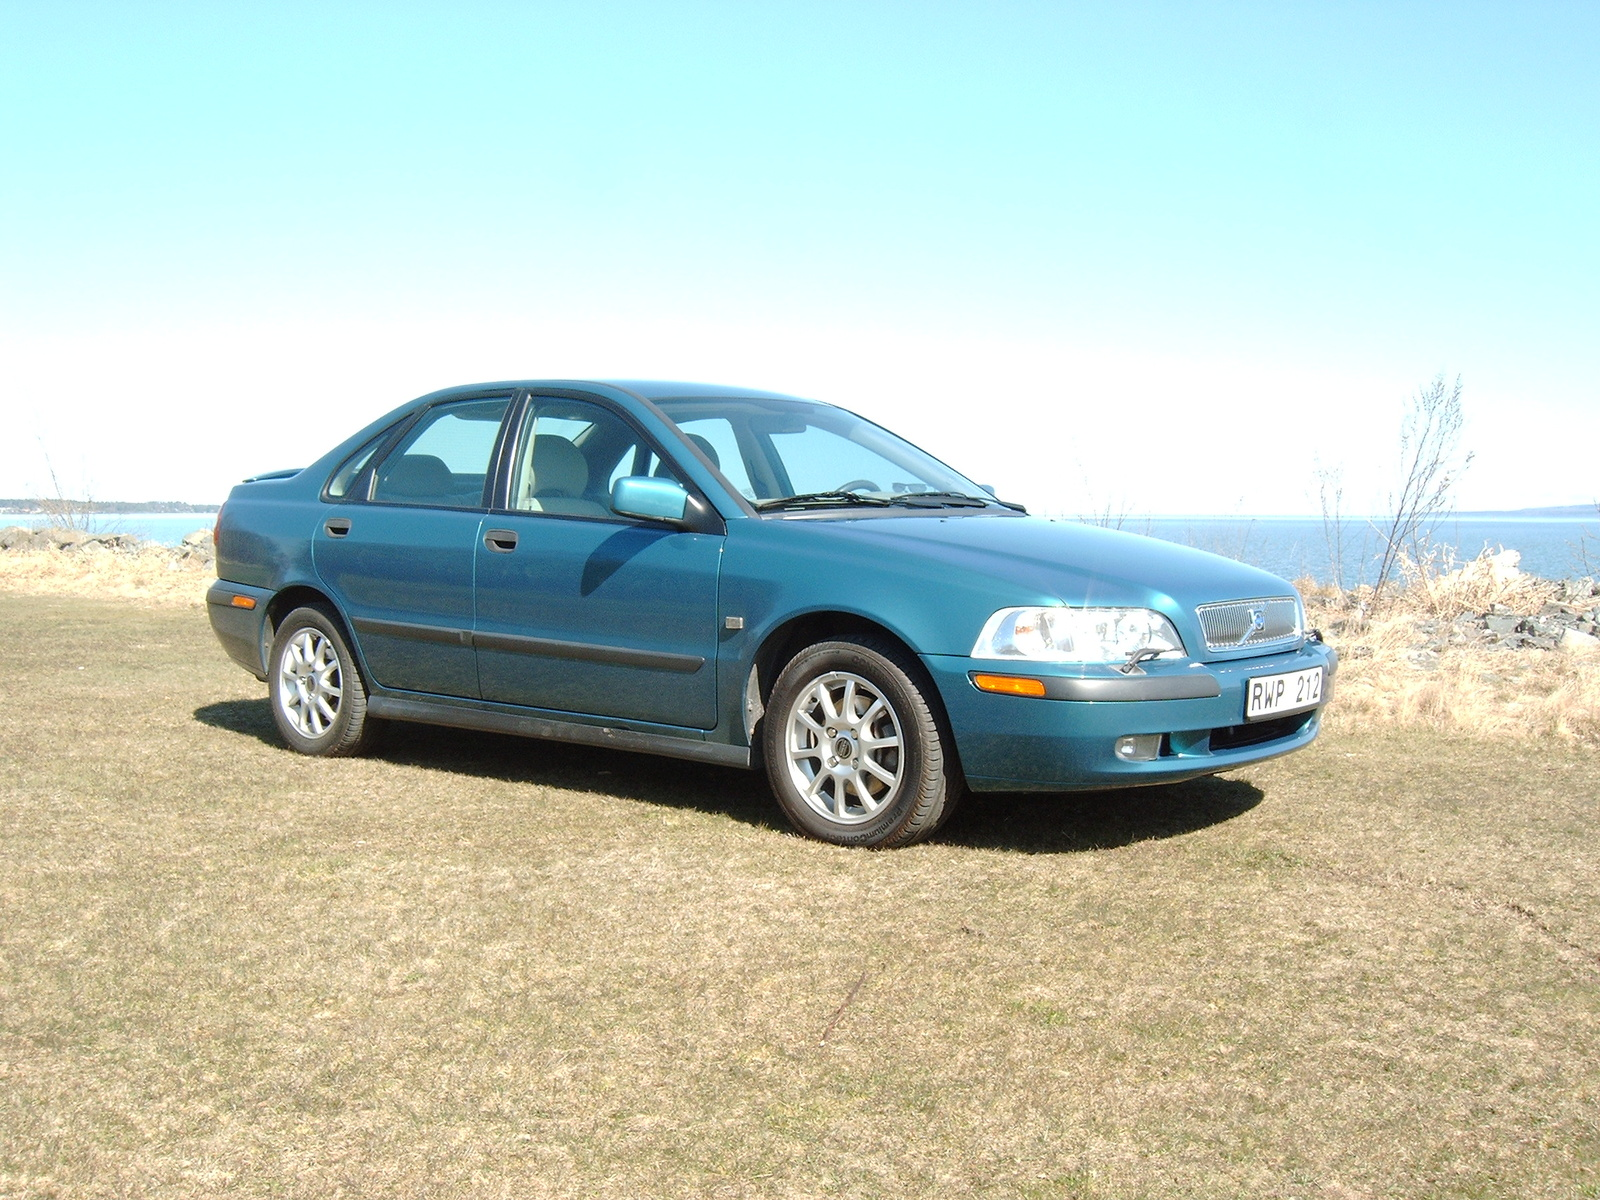 2001 Volvo S40 STD picture